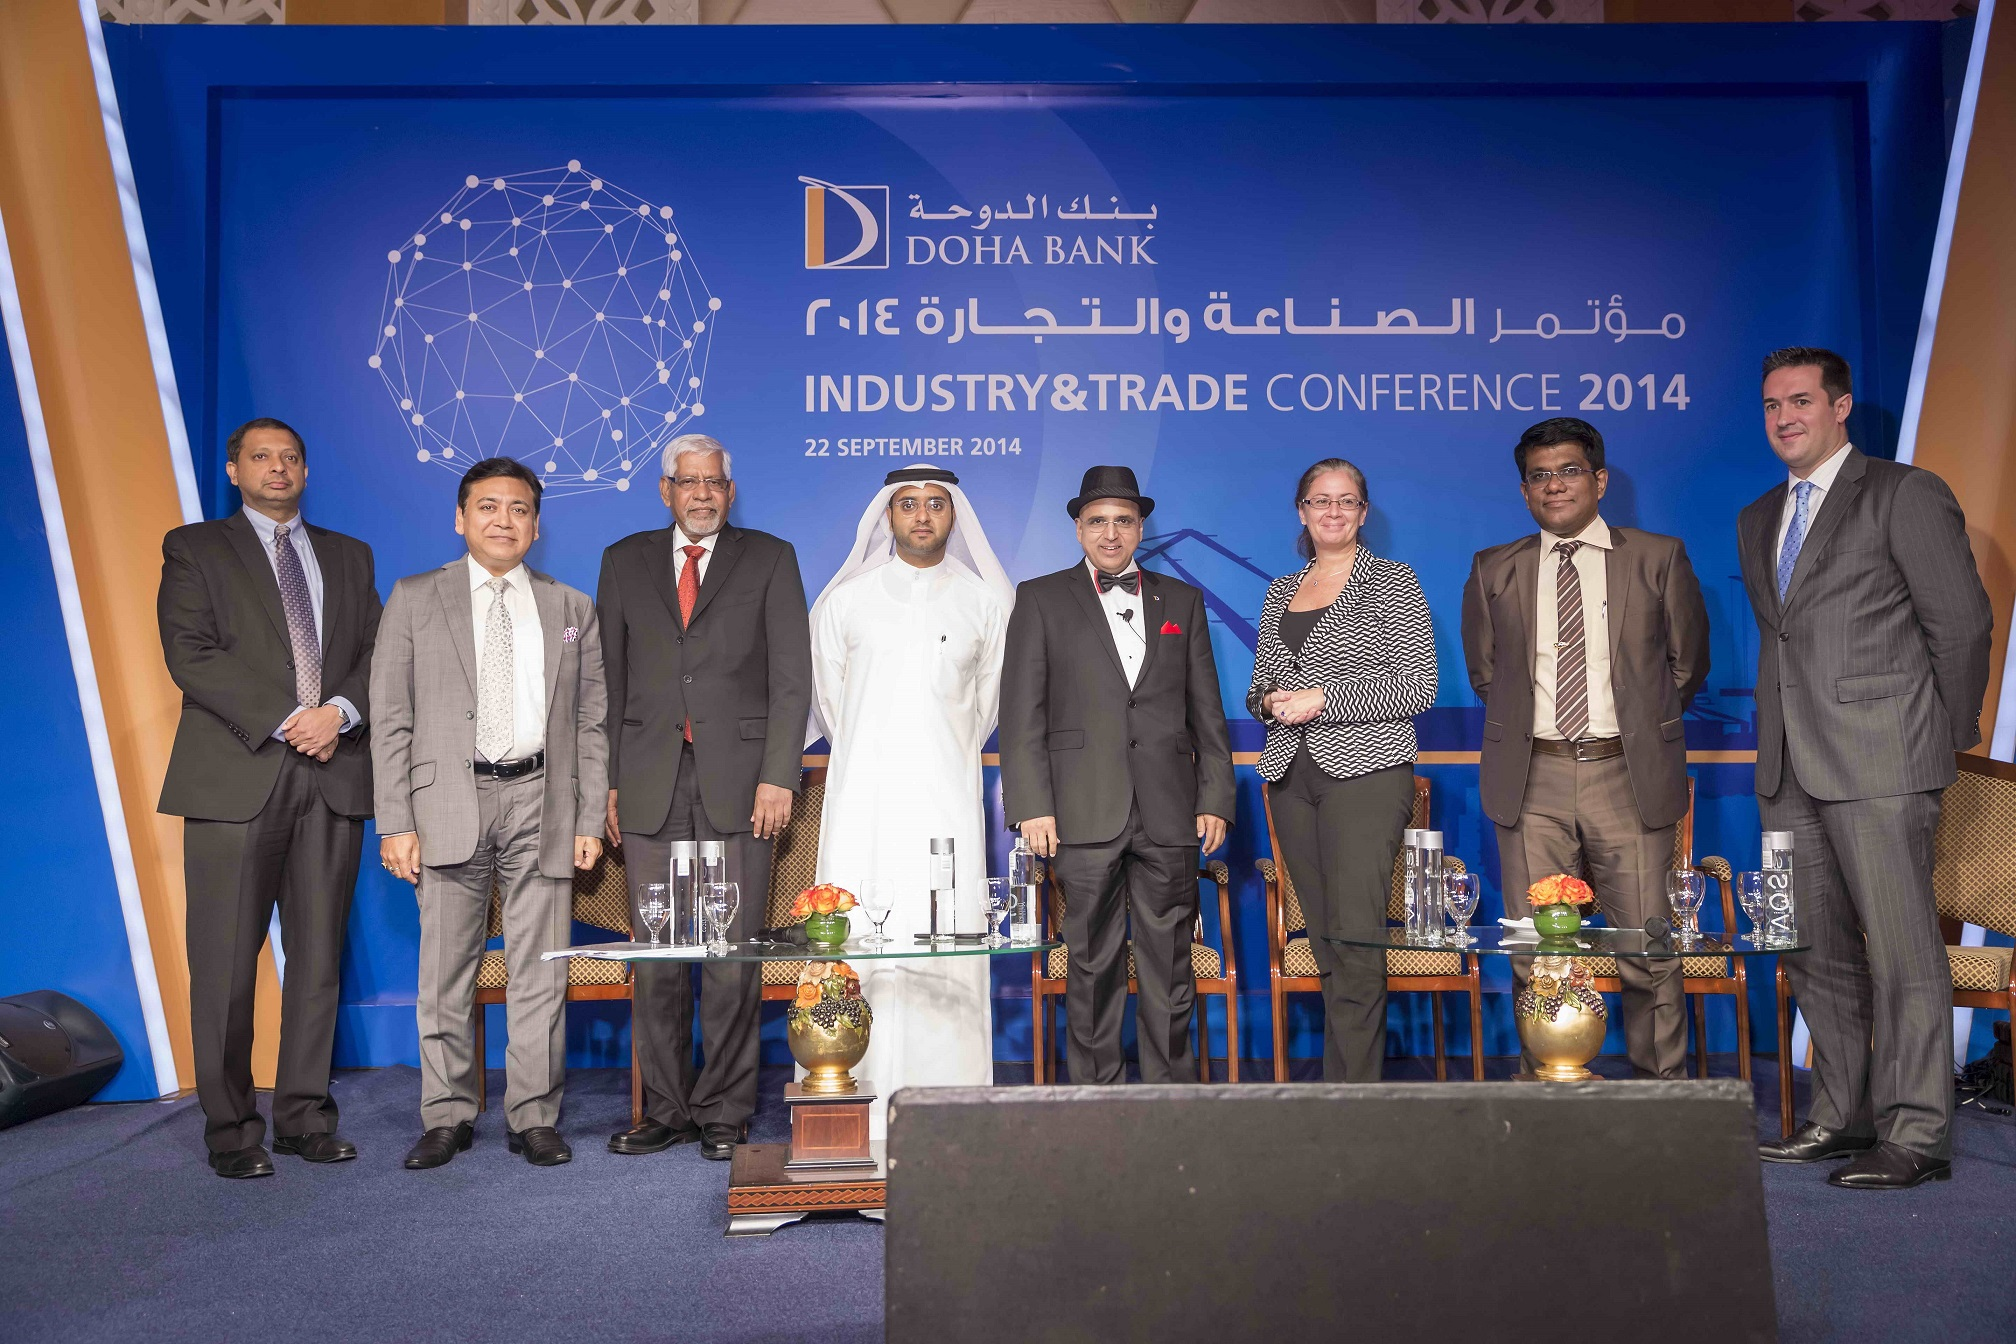 Experts Call for Greater Cross-Industry Partnership and Regulatory Alignment at Industry & Trade Conference in the UAE